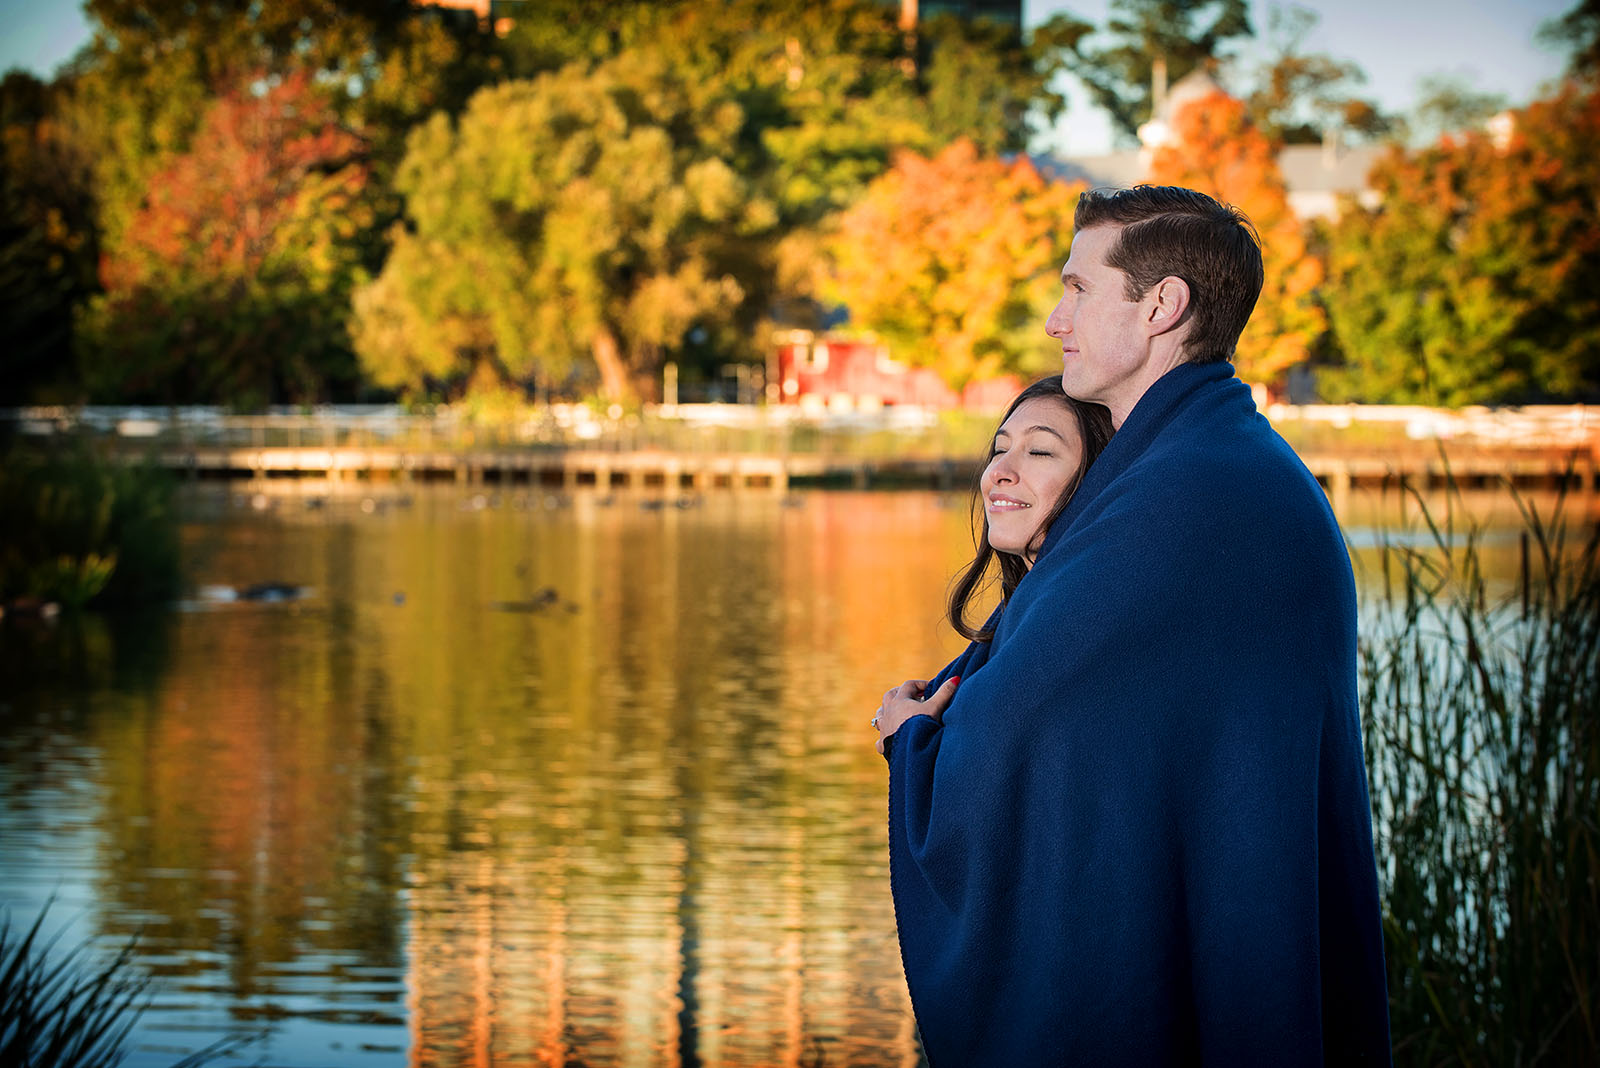 Lincoln Park Zoo South Pond Lake Engagement Photo